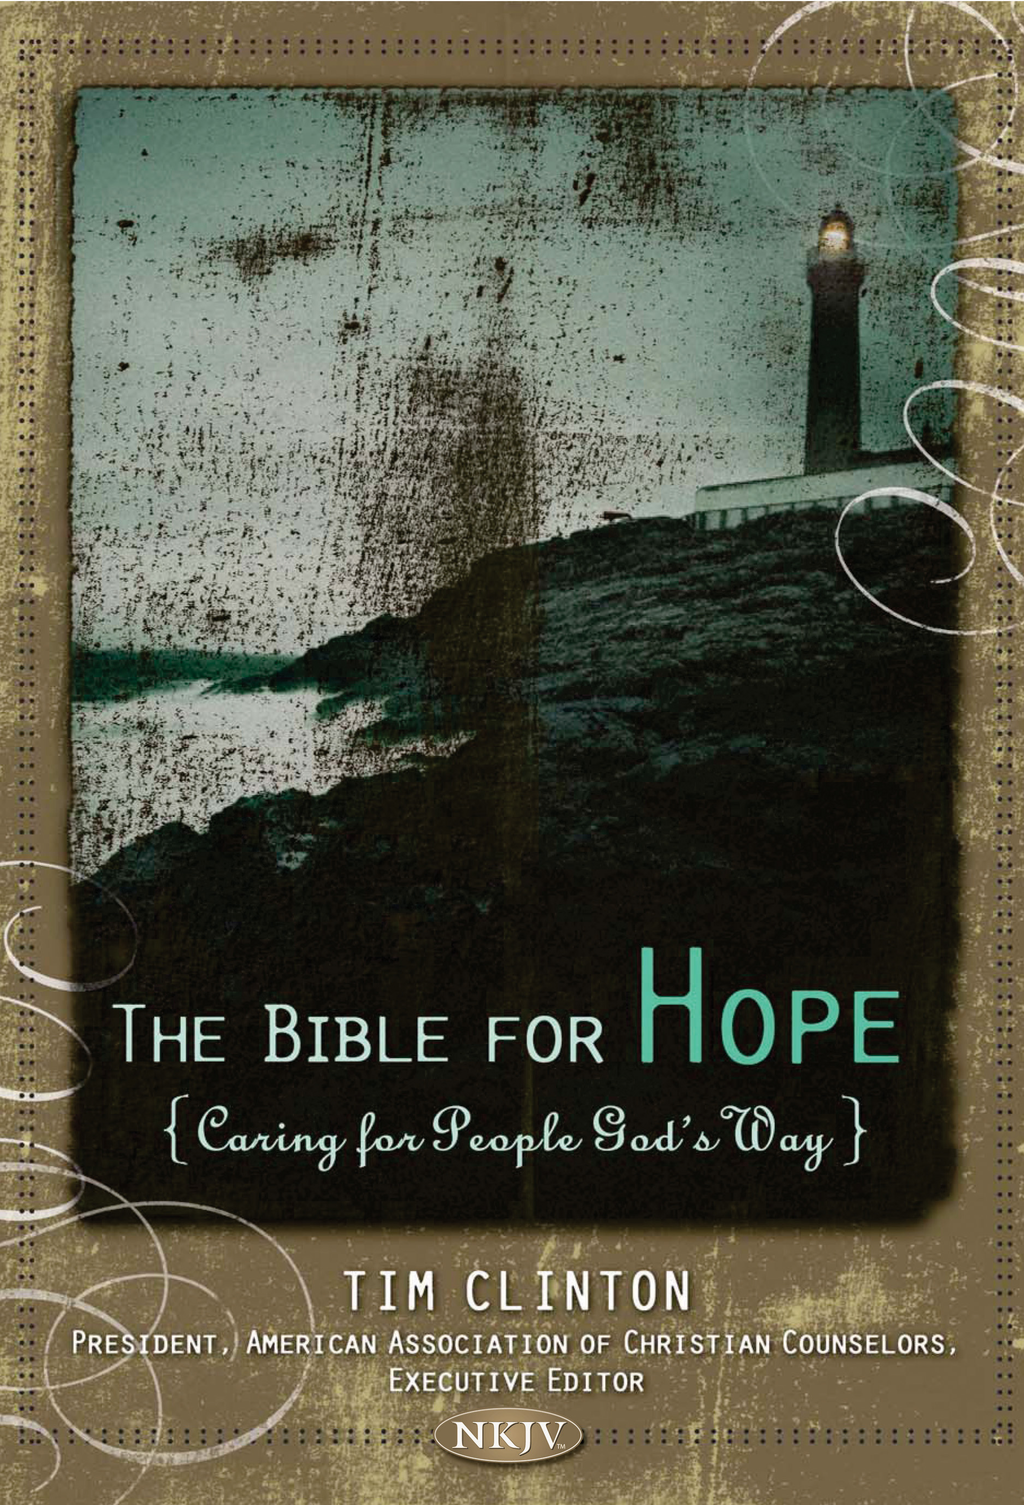 The Bible for Hope